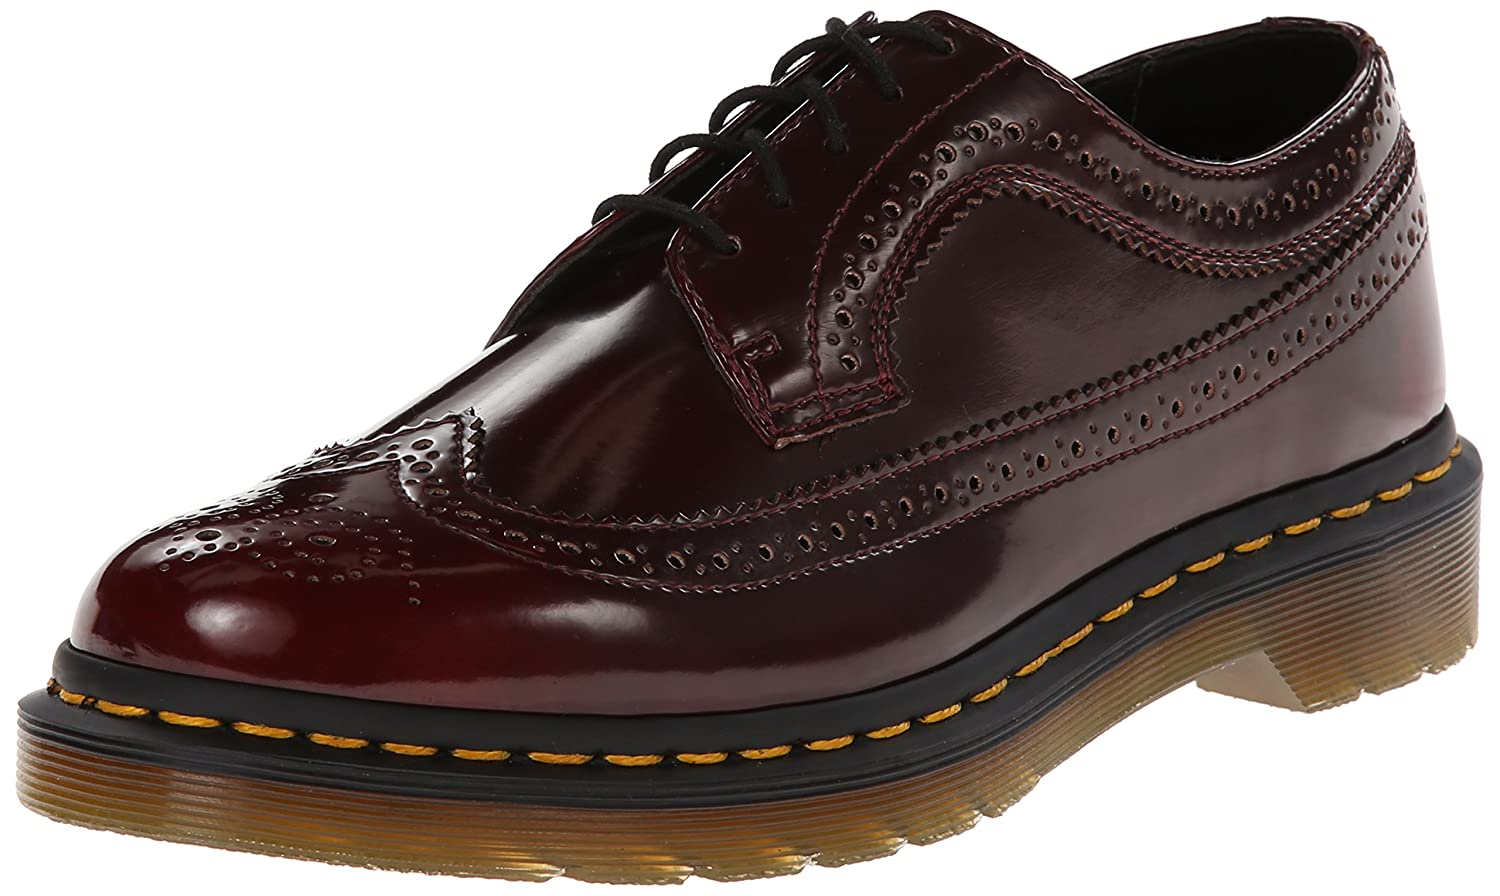 Dr Martens Cambridge Brush Vegan Zapatos de cordones para mujer Color Rojo